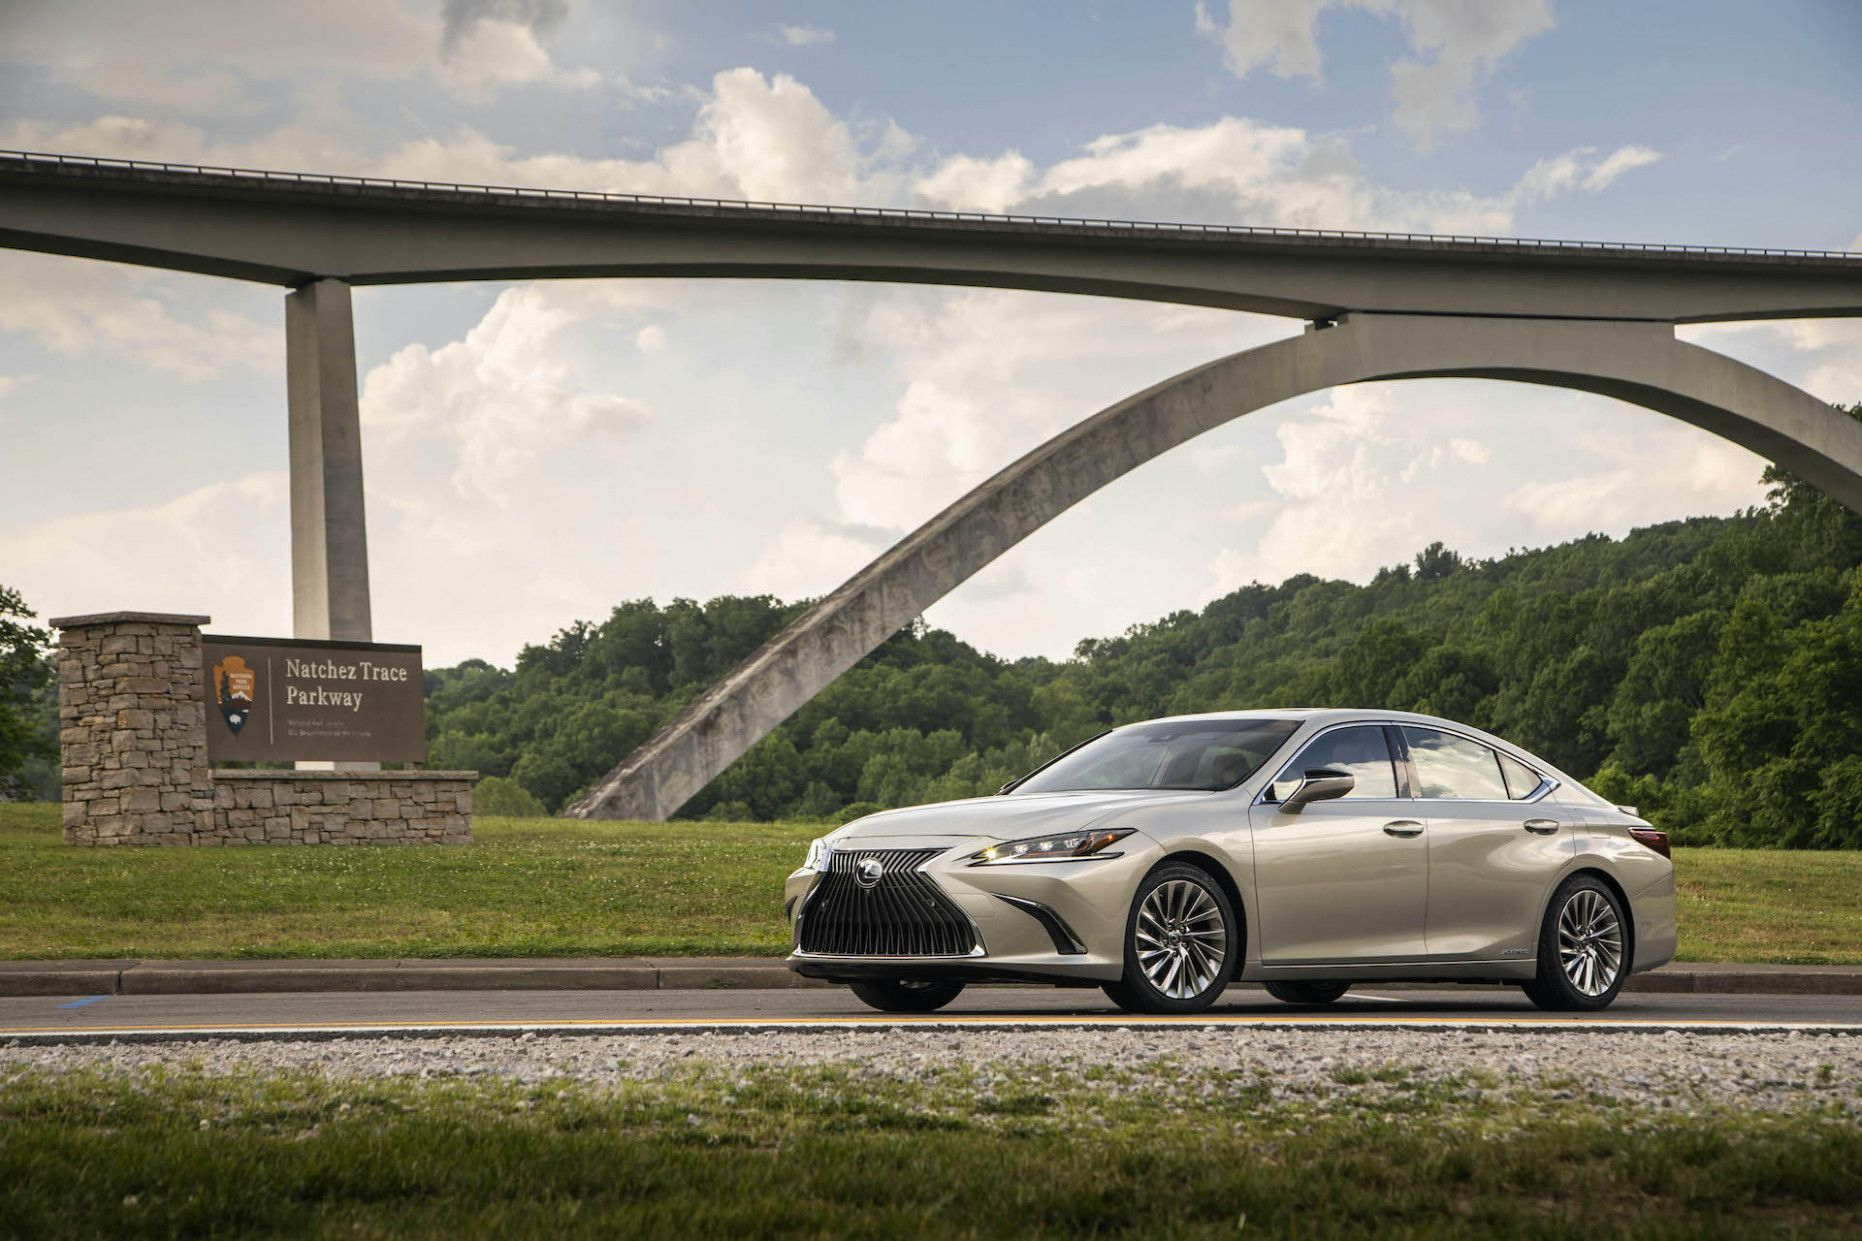 12 Wallpaper 2020 Lexus Es Review In 2020 Lexus Es Lexus New Car Wallpaper